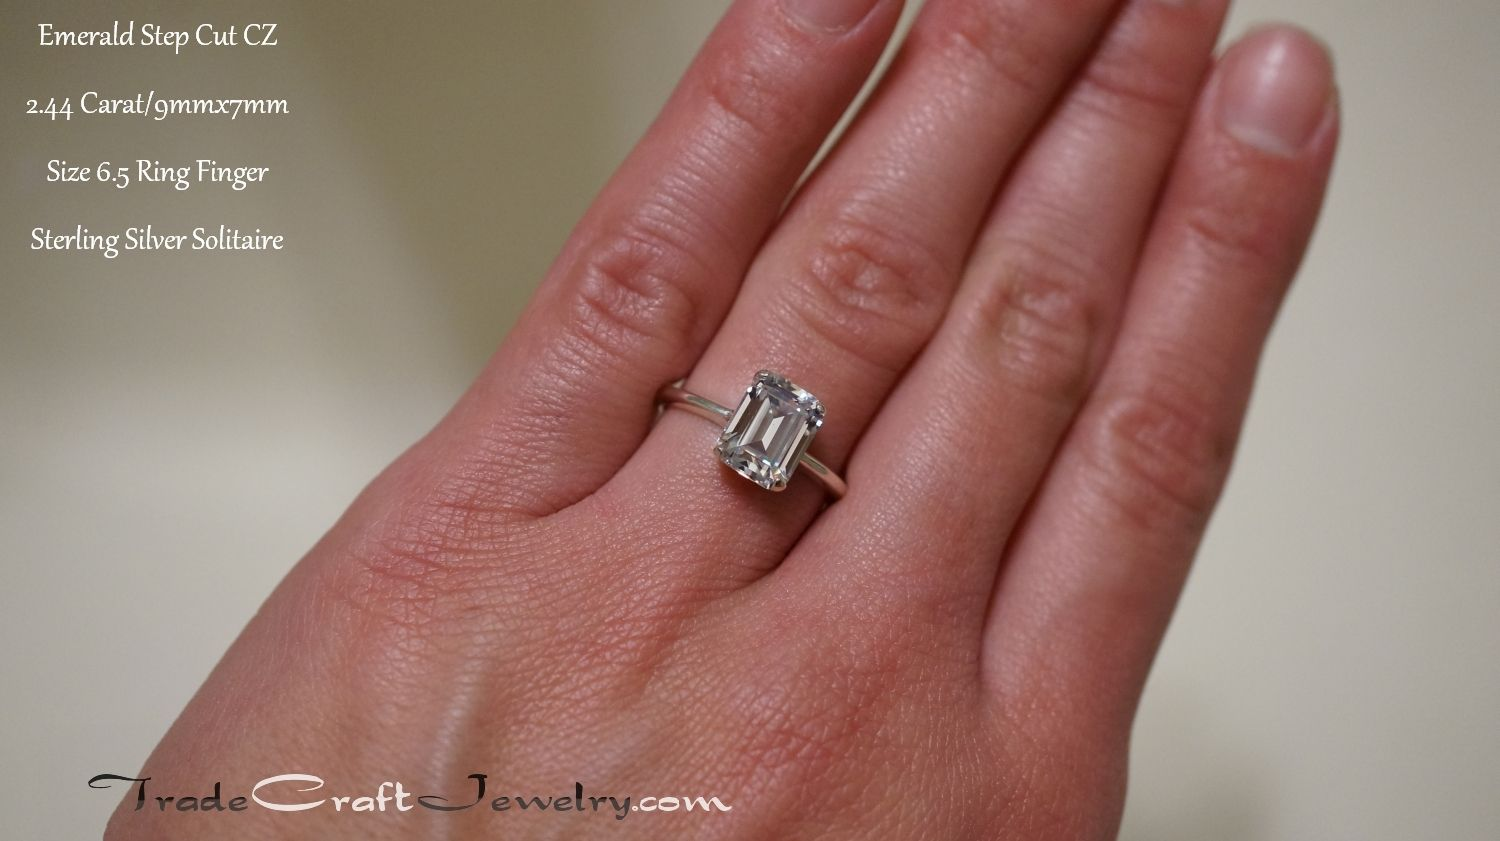 44f0921cf03bb Emerald Cut CZ Engagement Ring Sterling Silver Promise Ring Step Cut ...